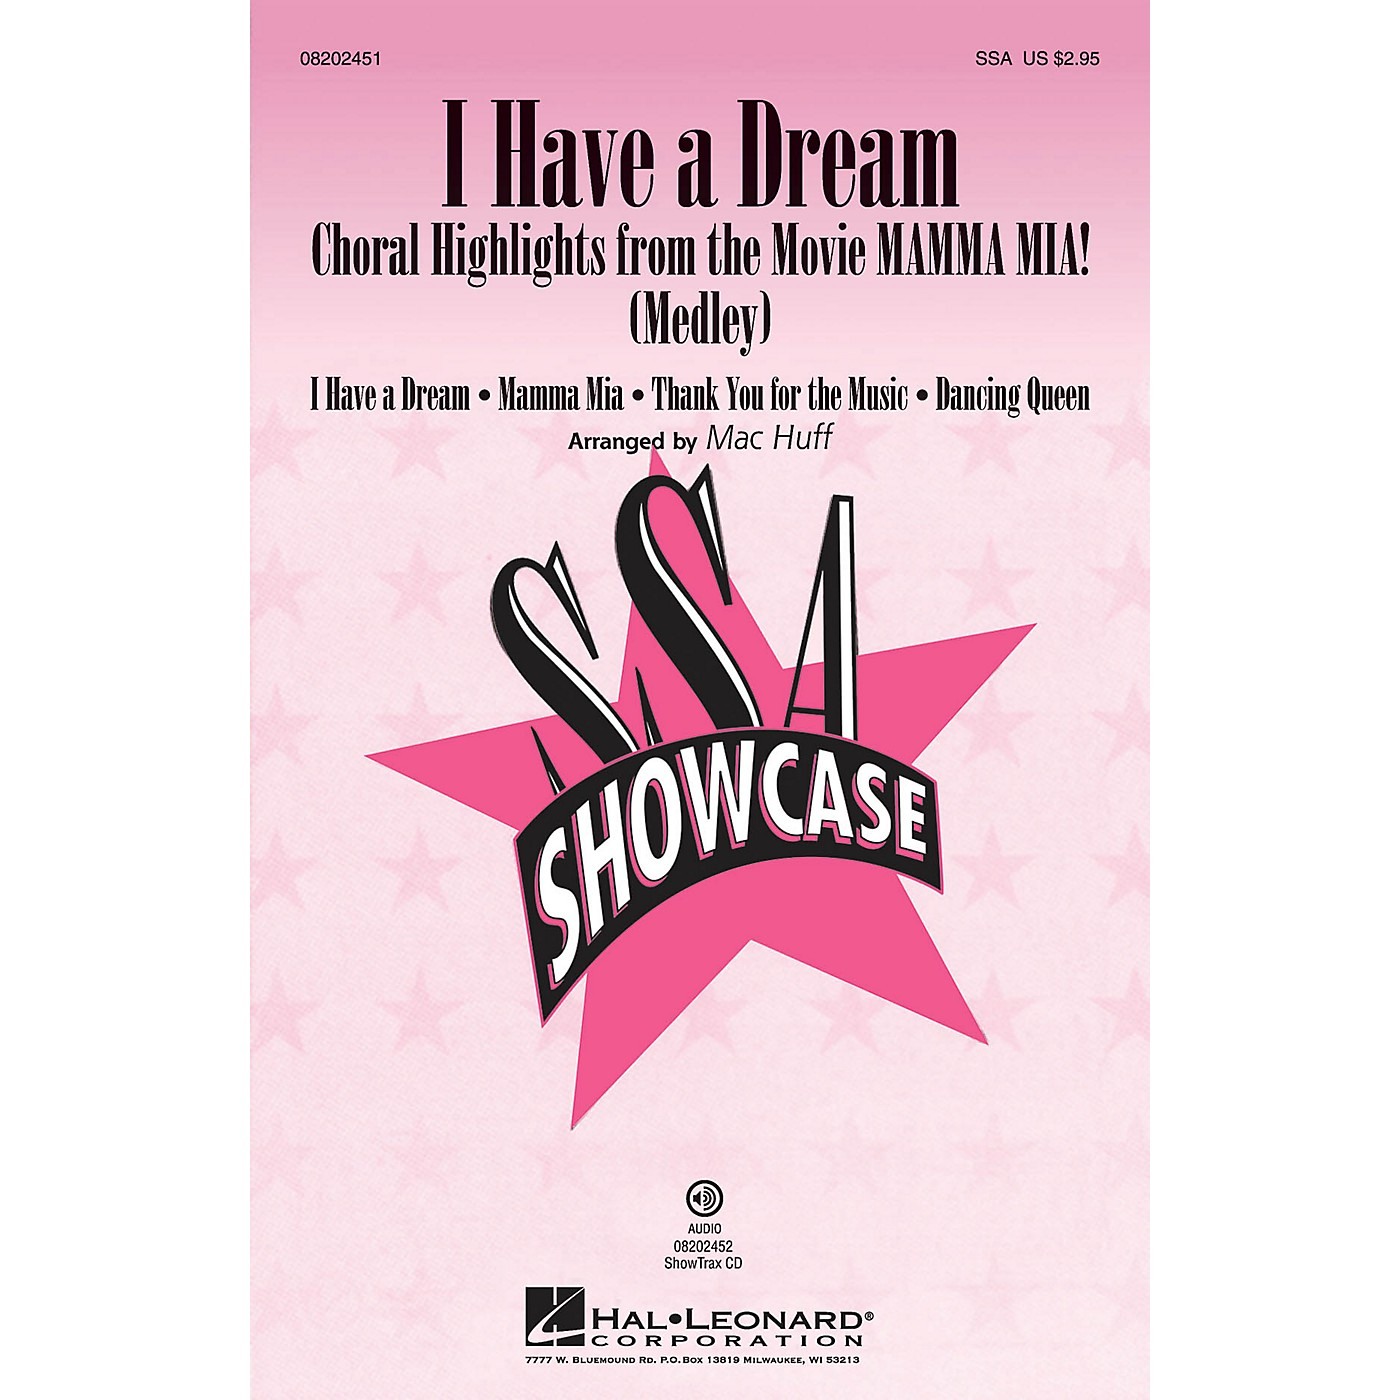 Hal Leonard I Have a Dream (Choral Highlights from The Movie Mamma Mia!) ShowTrax CD by ABBA Arranged by Mac Huff thumbnail